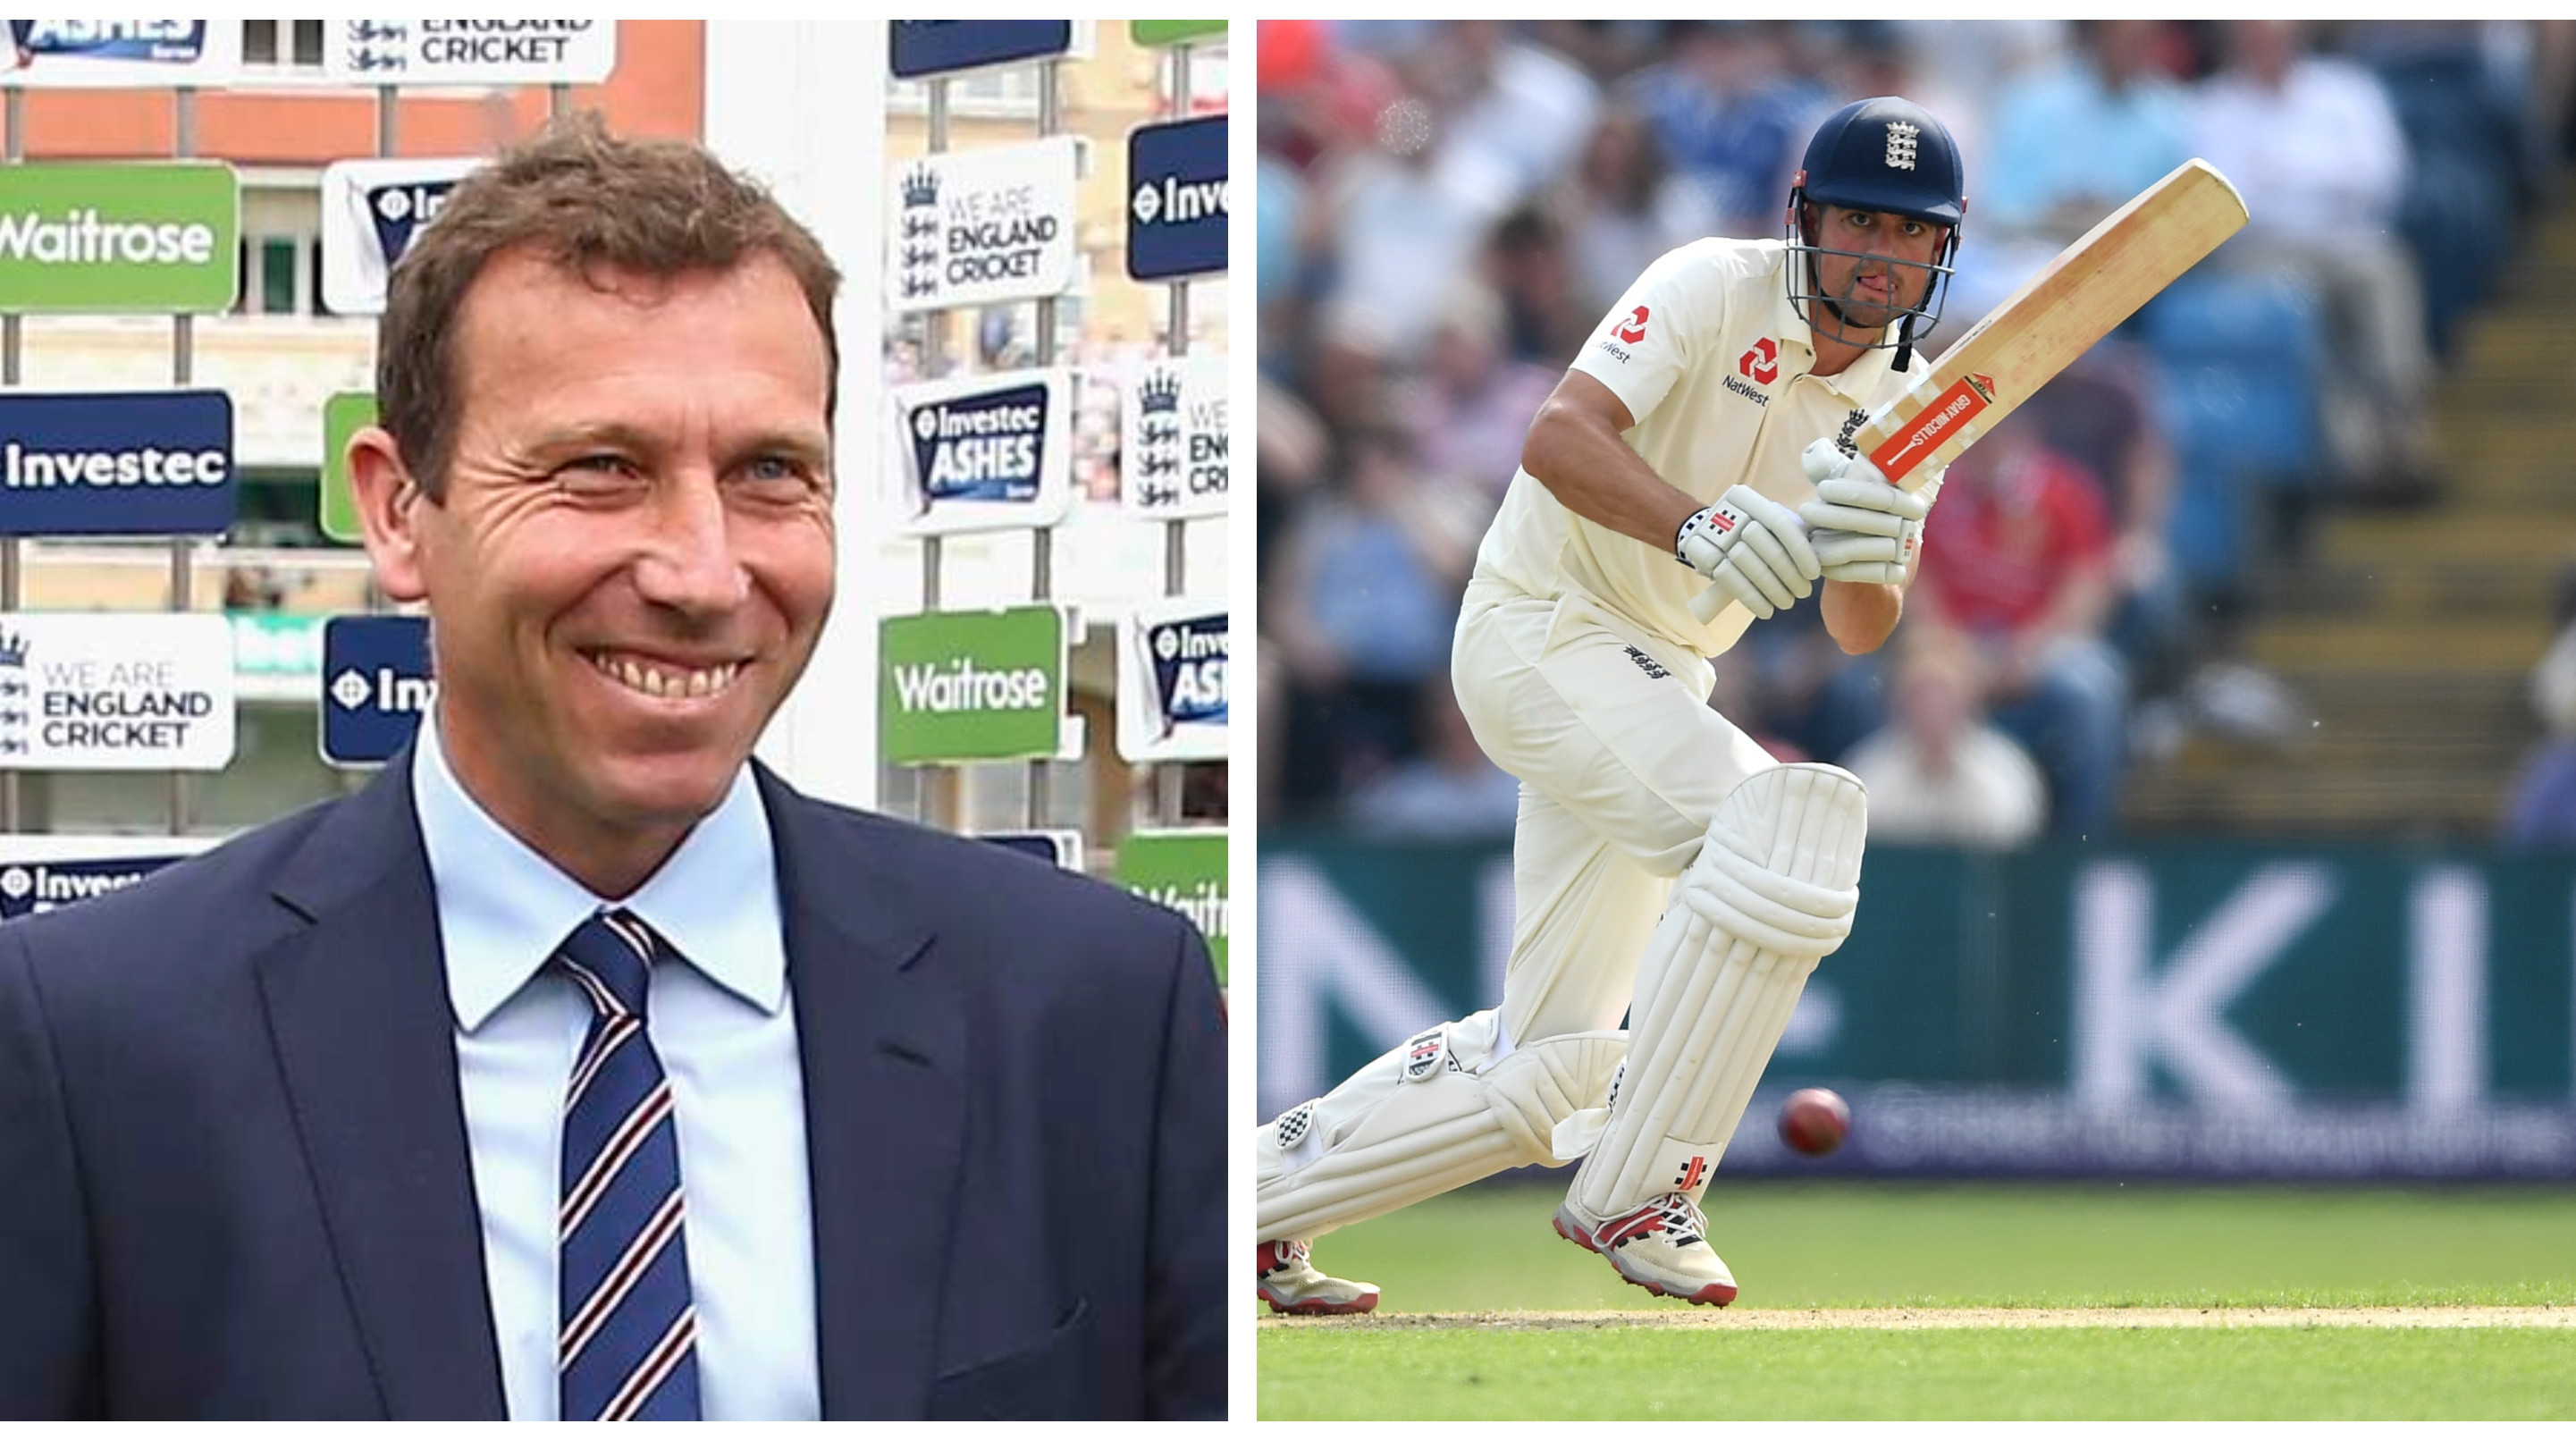 ENG vs IND 2018: 2012 series triumph in India, Cook's finest achievement, hails Michael Atherton